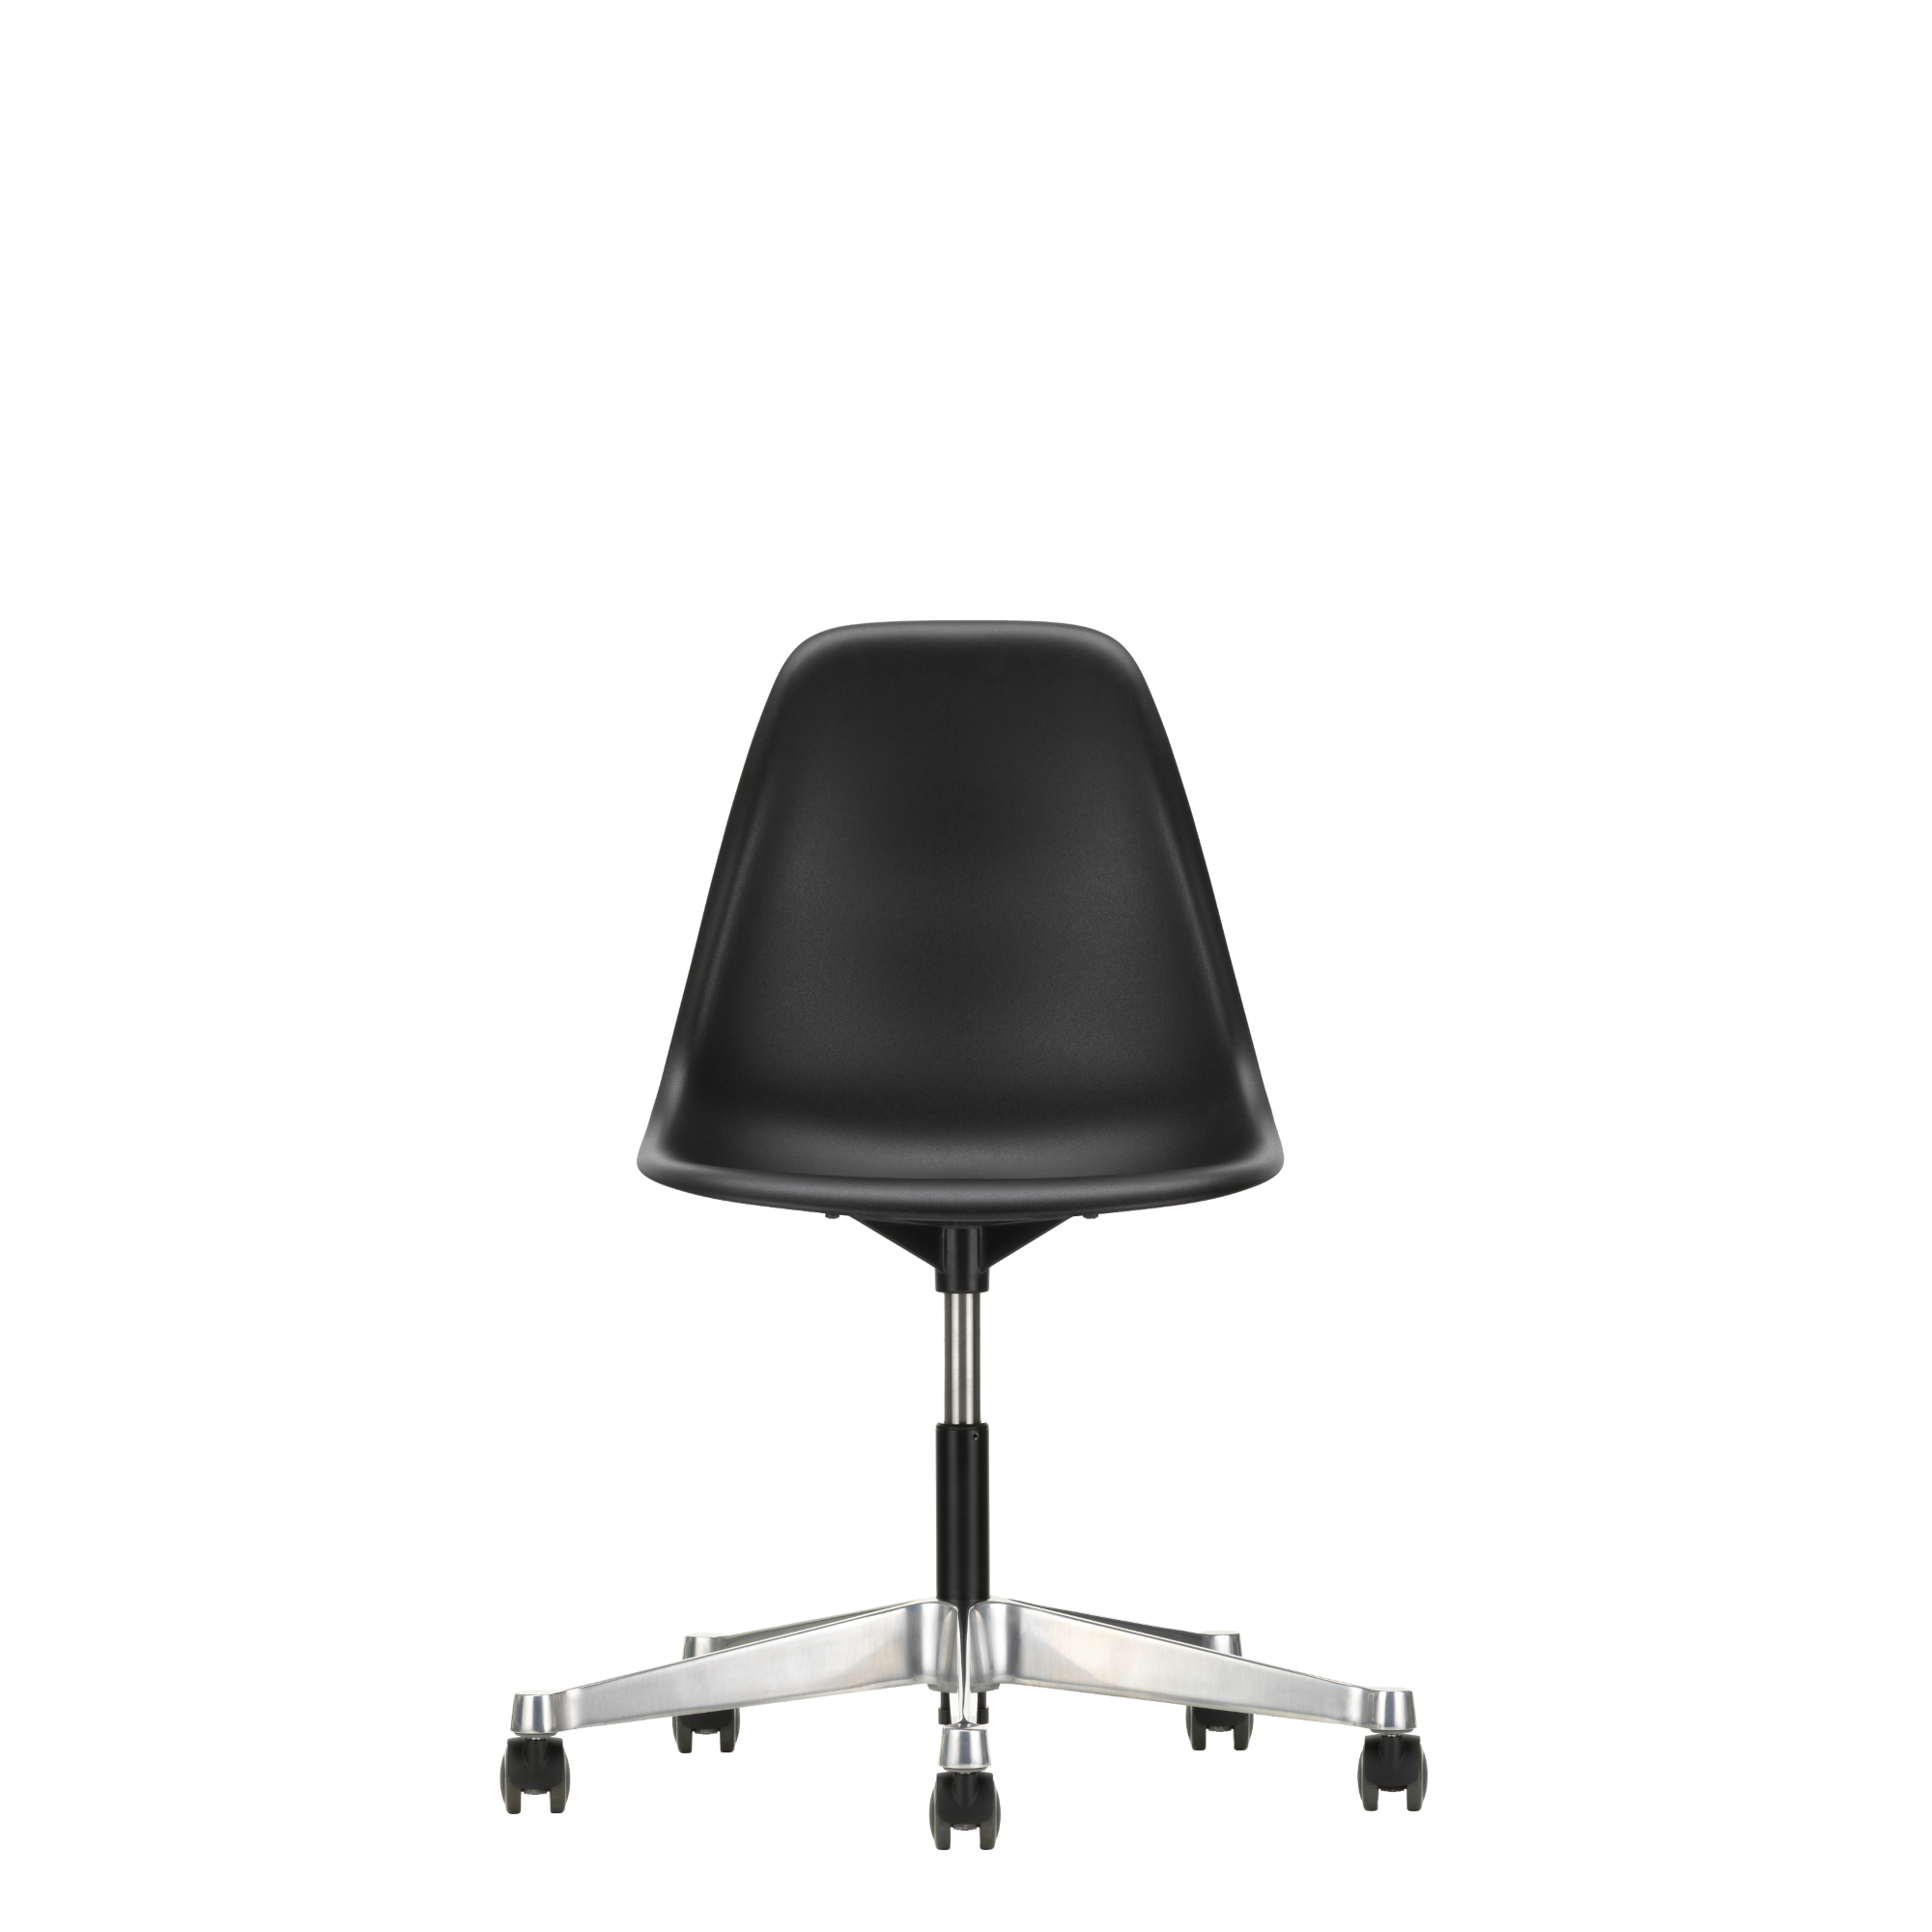 Eames Plastic Side Chair PSCC